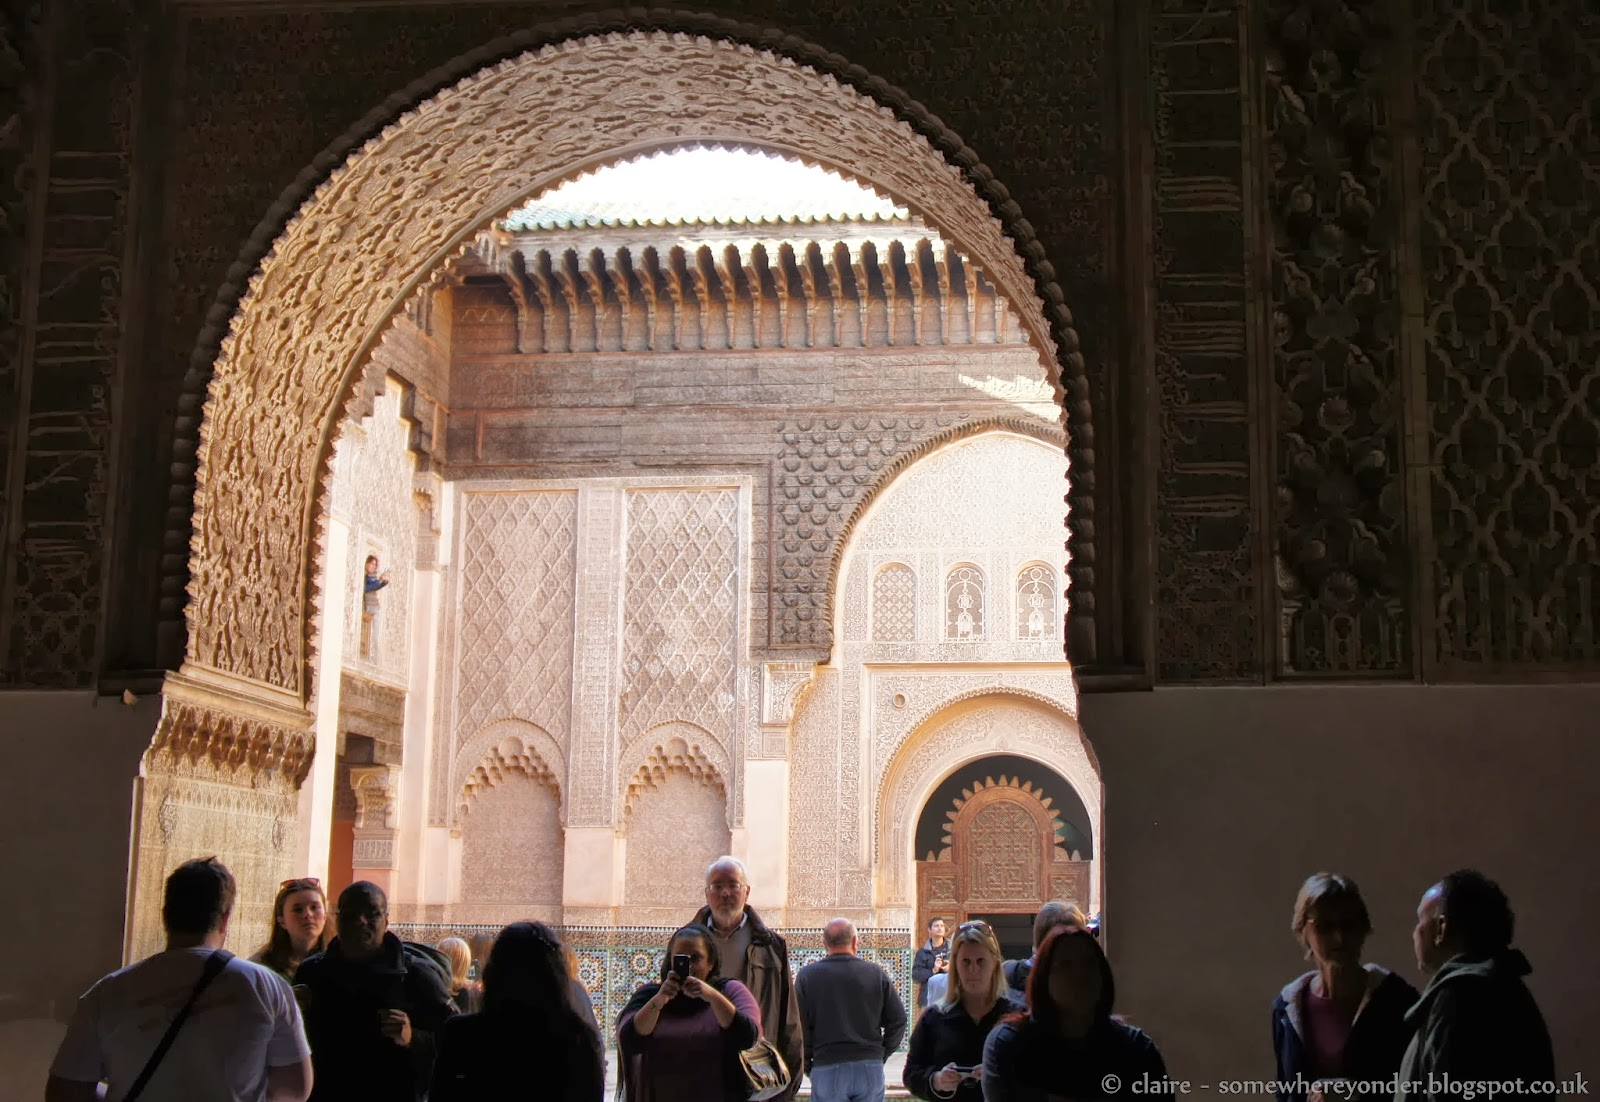 Tourists at Ben Youssef Madrasa, Marrakech